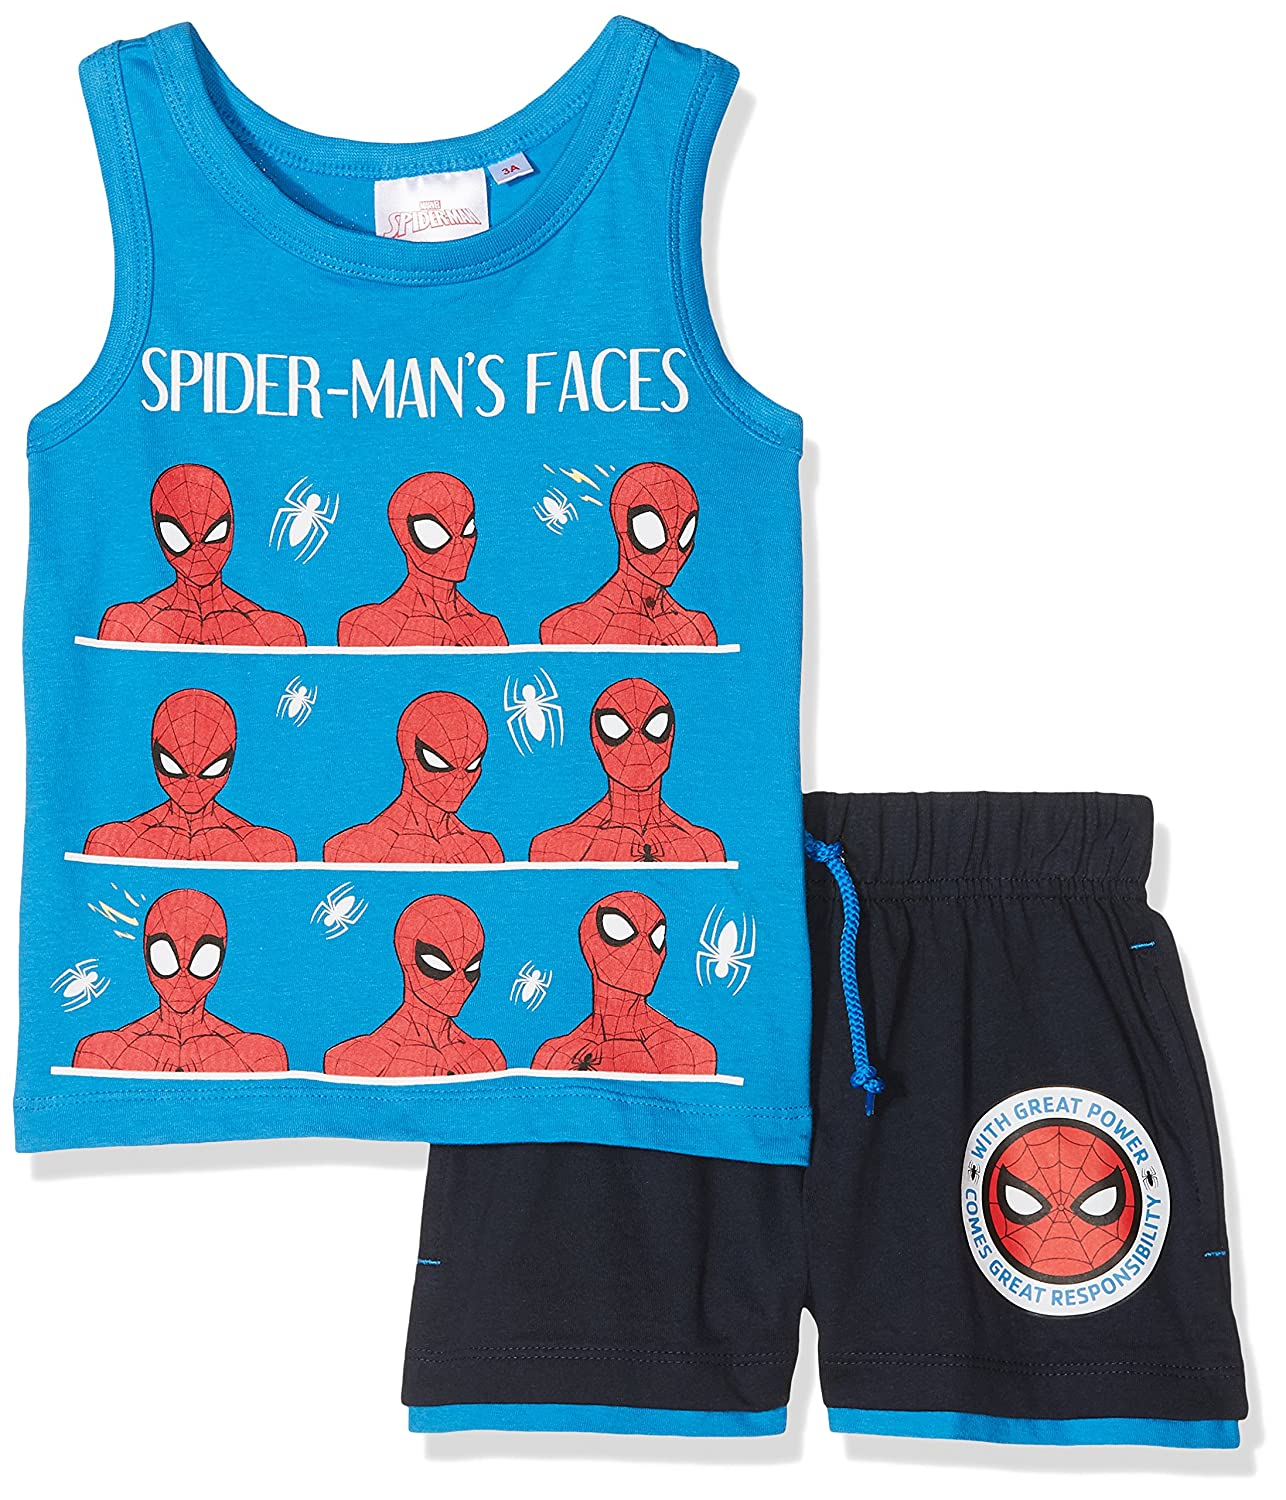 Spiderman Jungen Sportbekleidung Set Patch ER1153